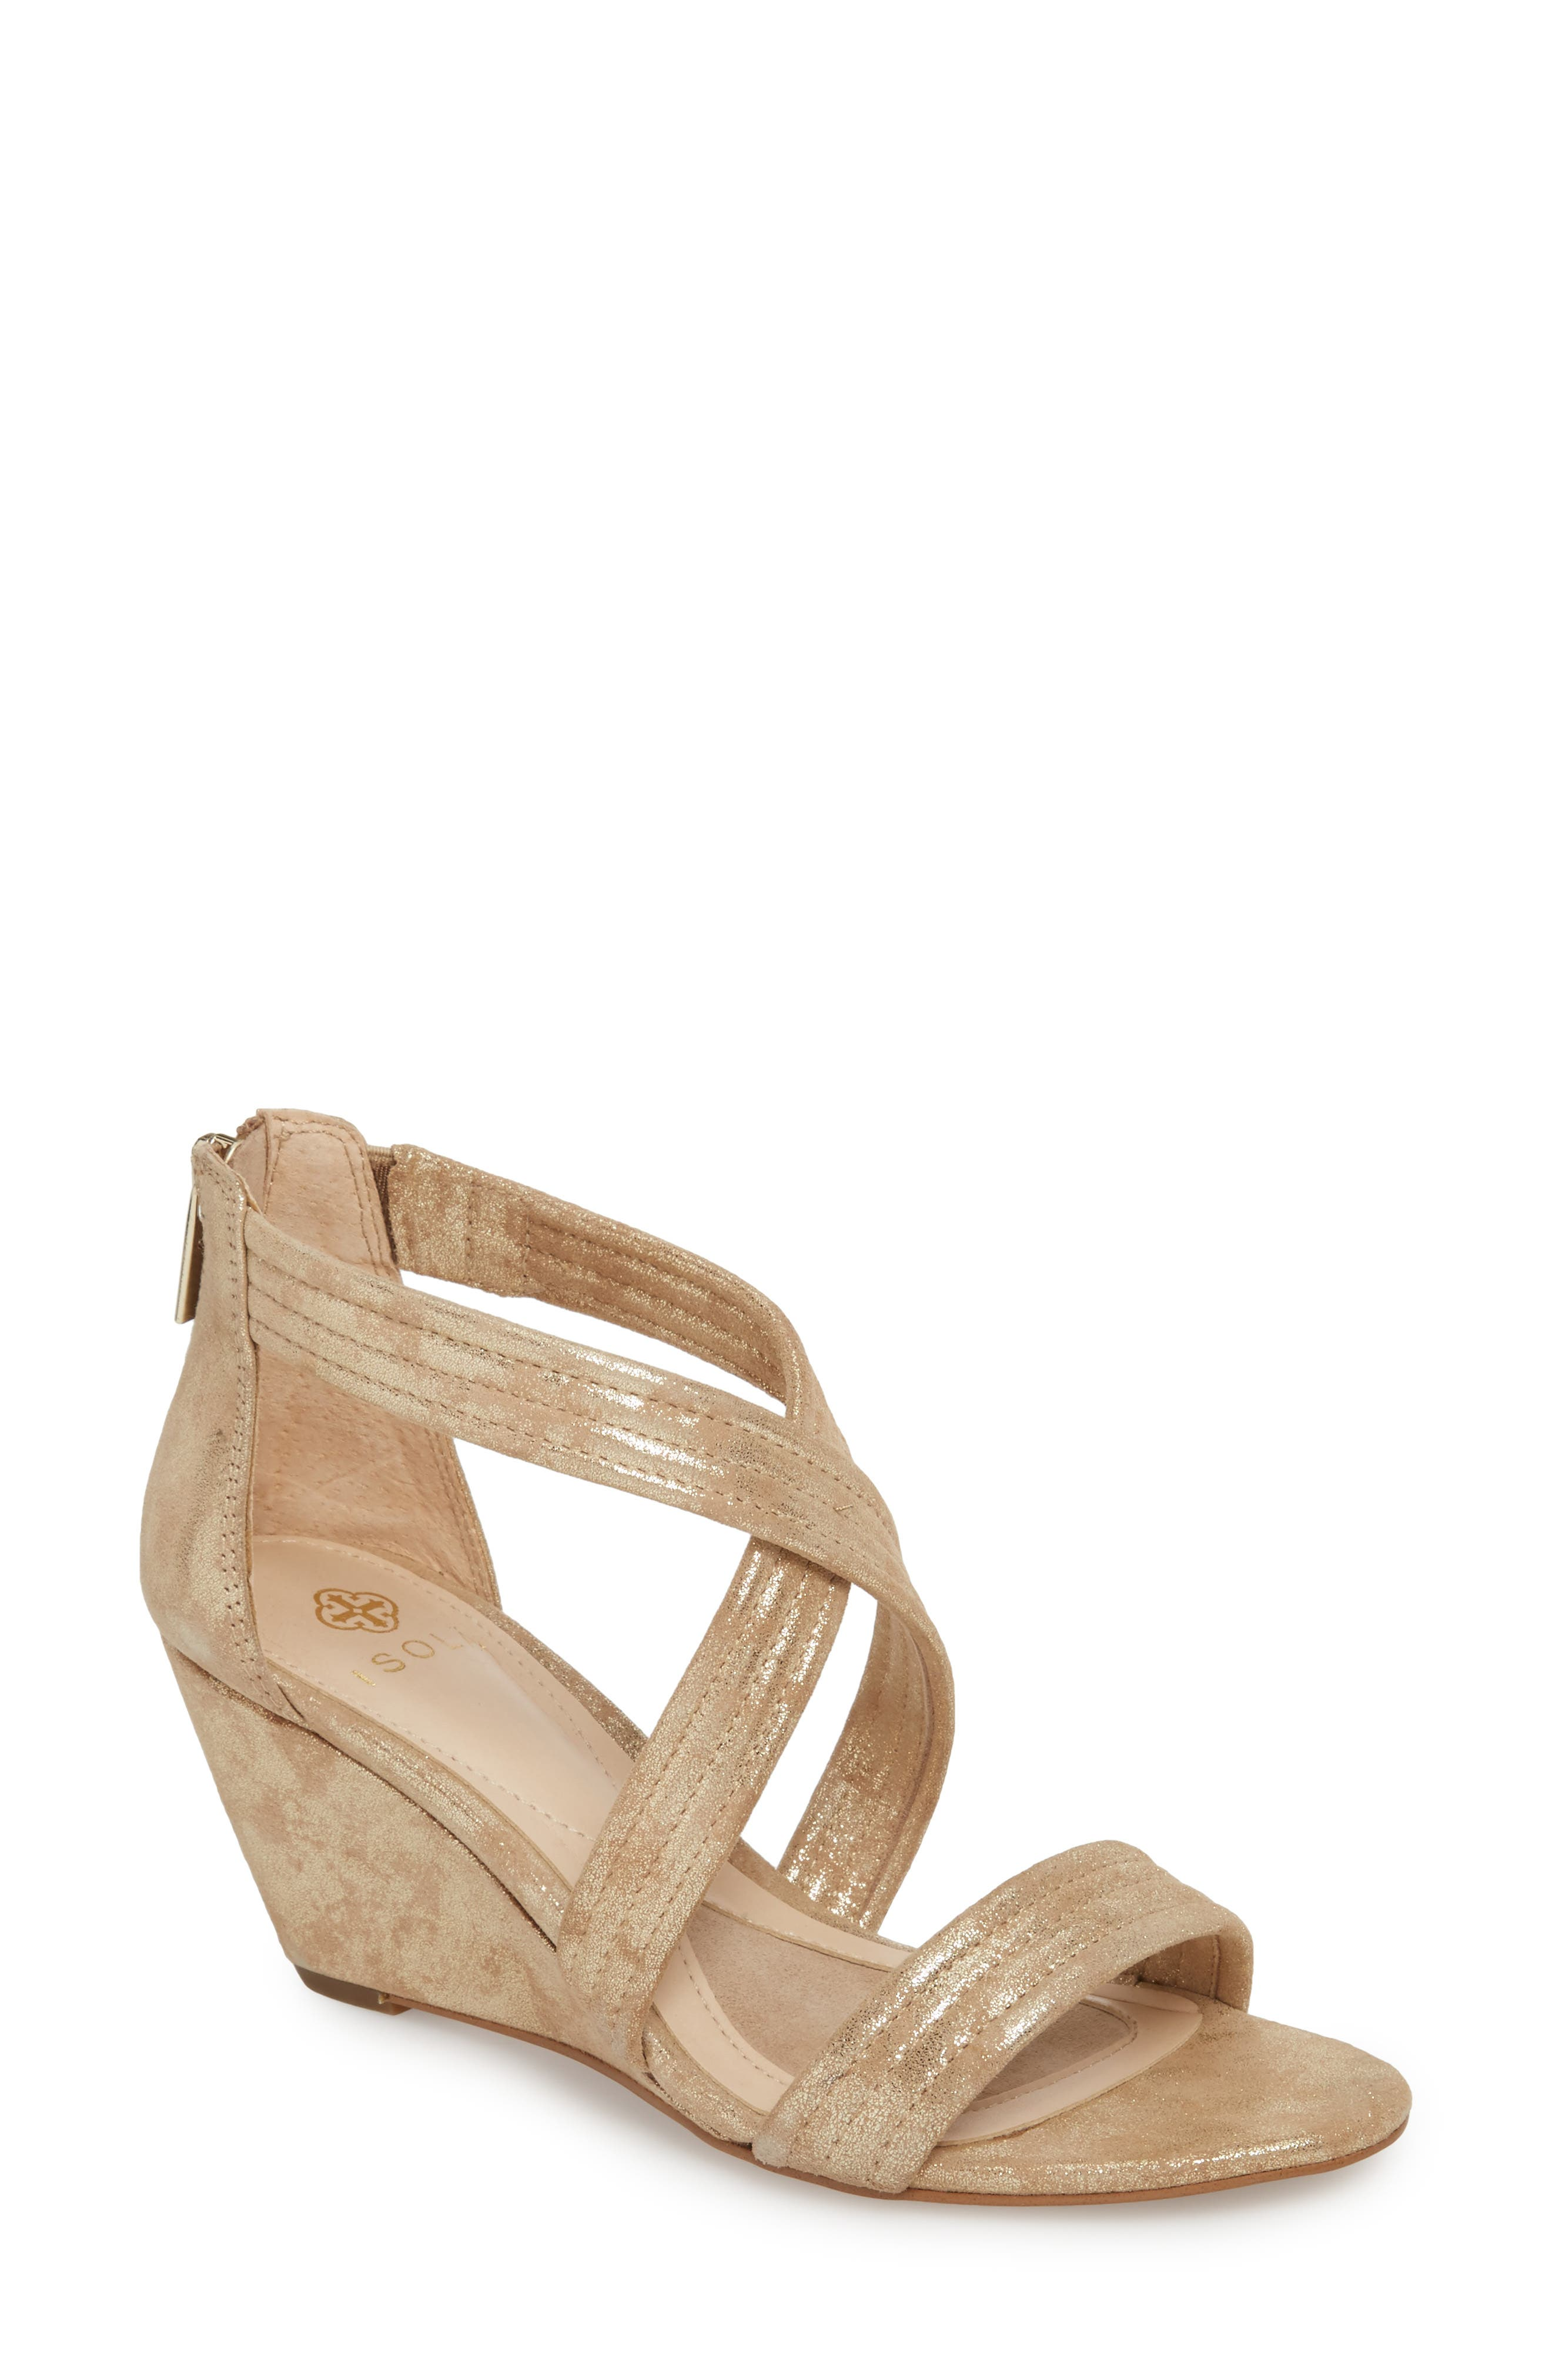 Fia Wedge Sandal,                             Main thumbnail 1, color,                             Platino Distressed Suede